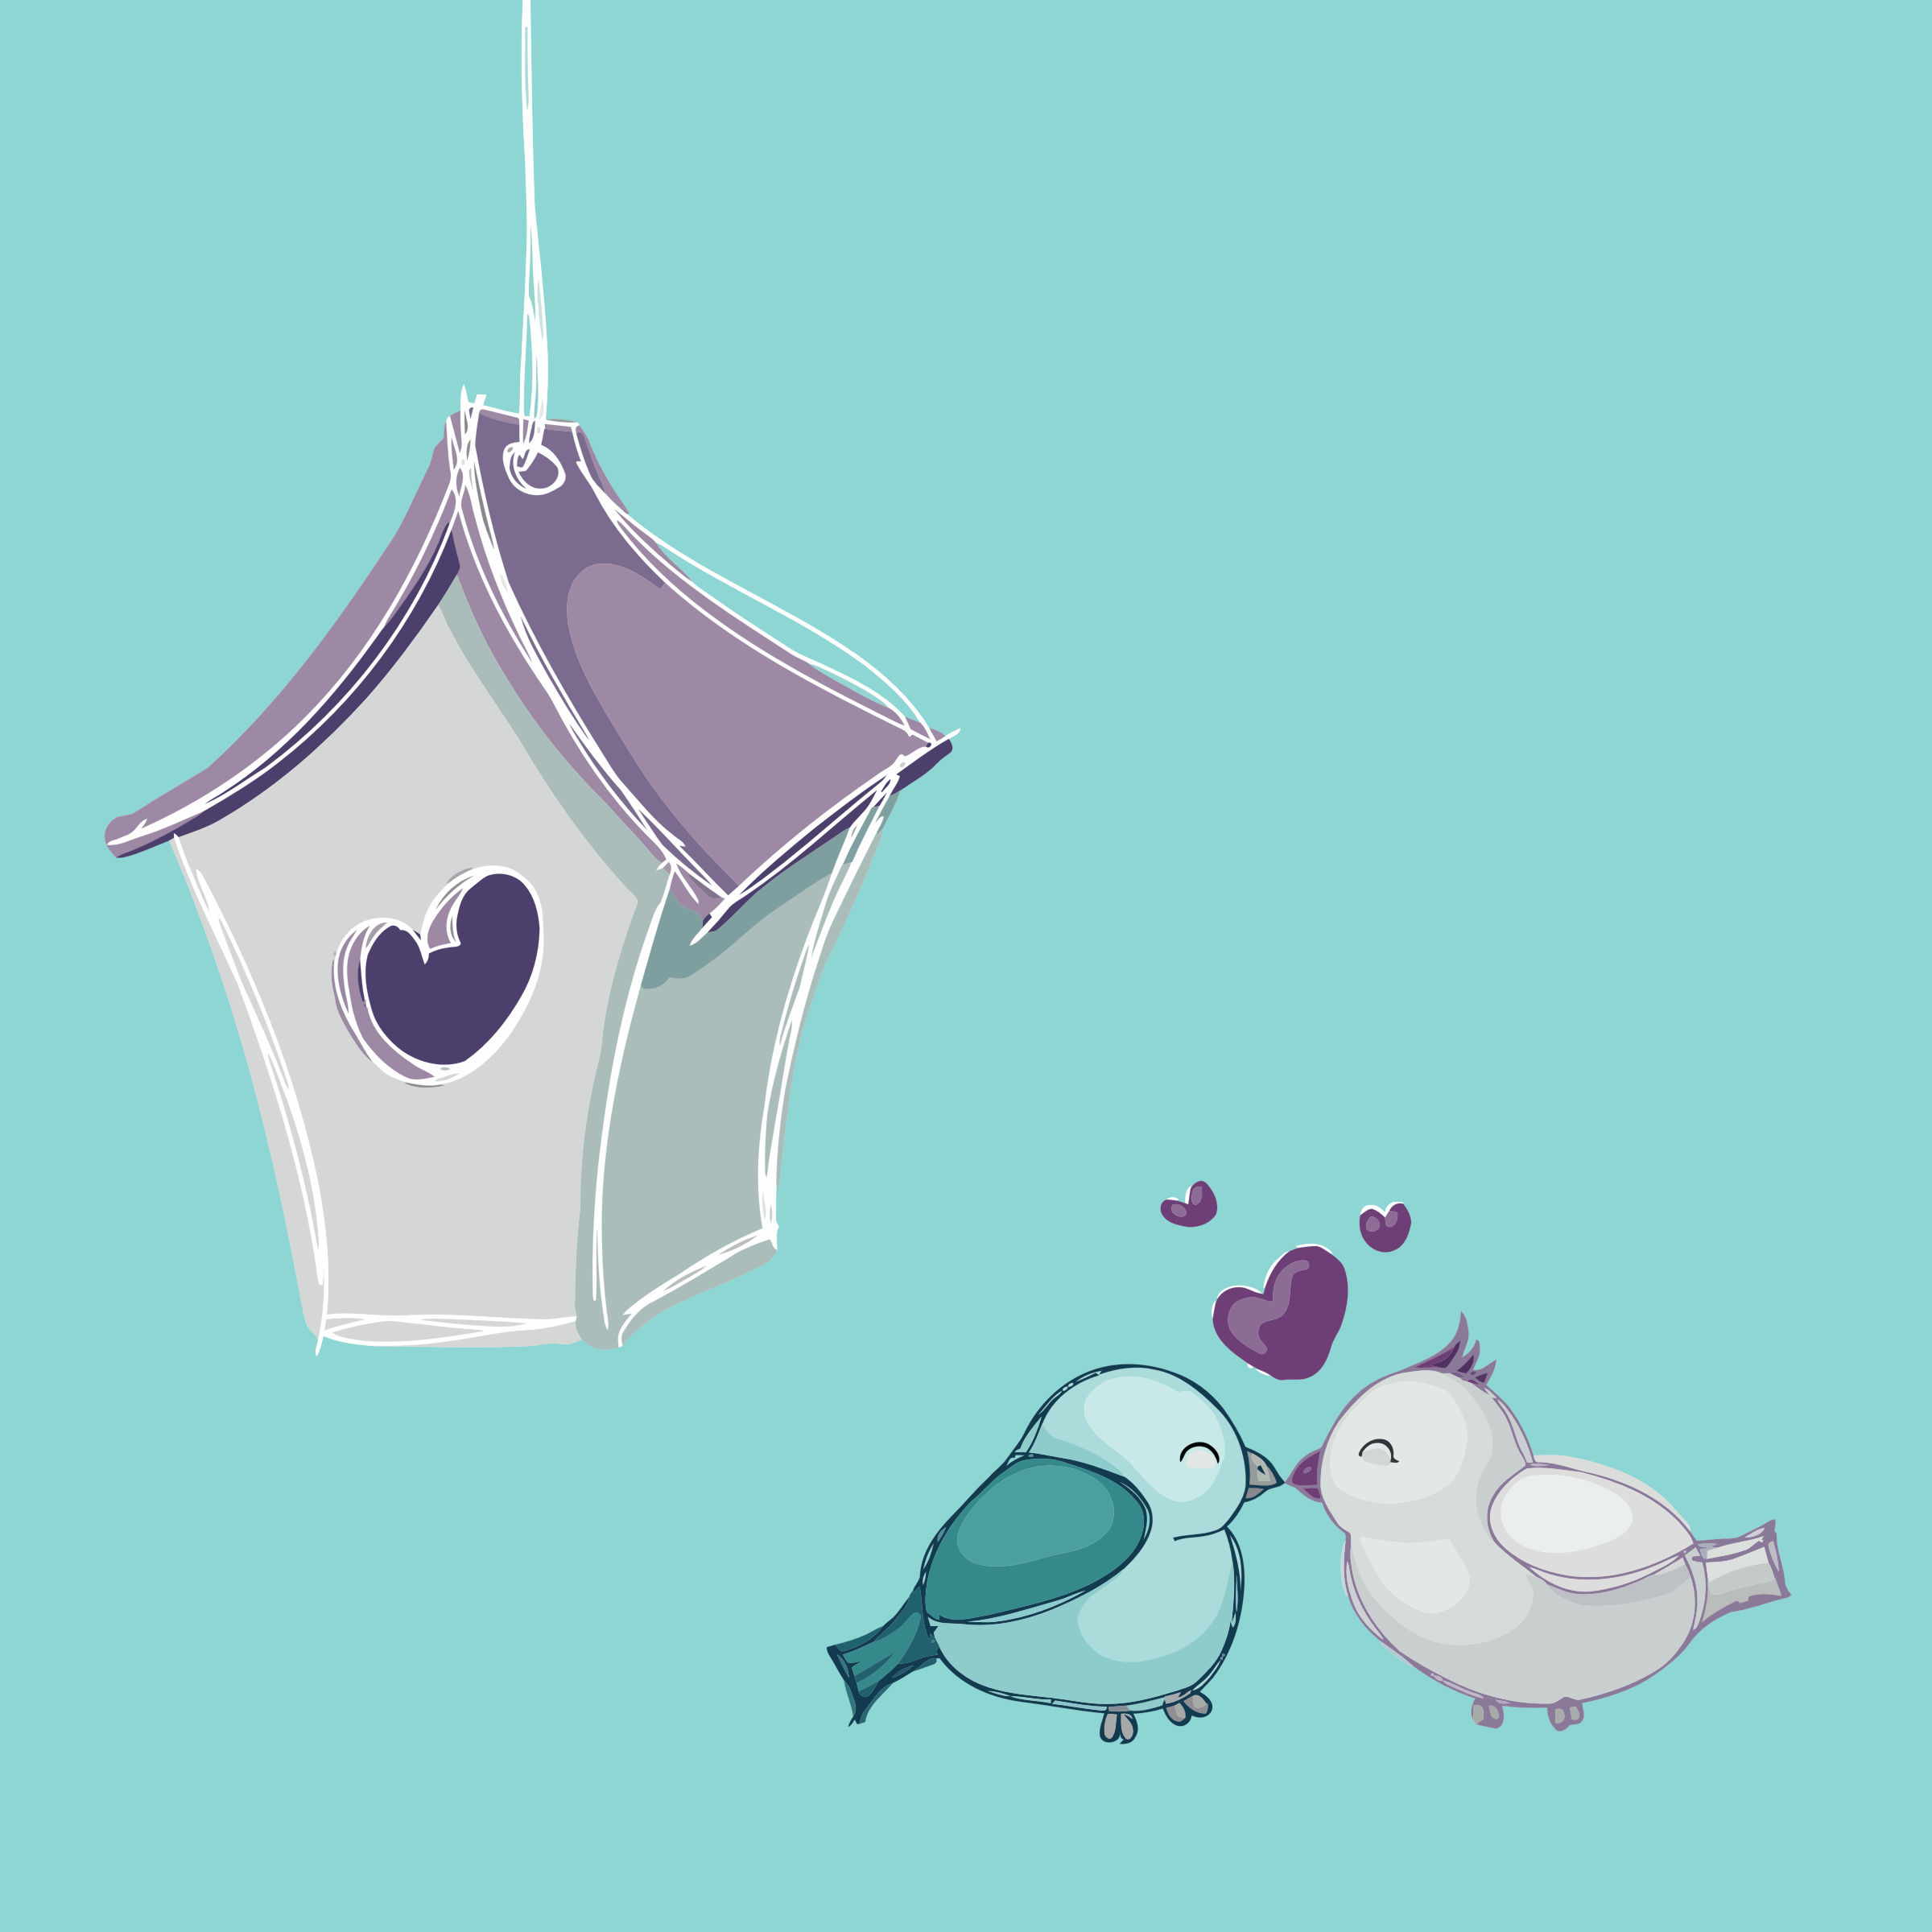 Love Birds by GDJ